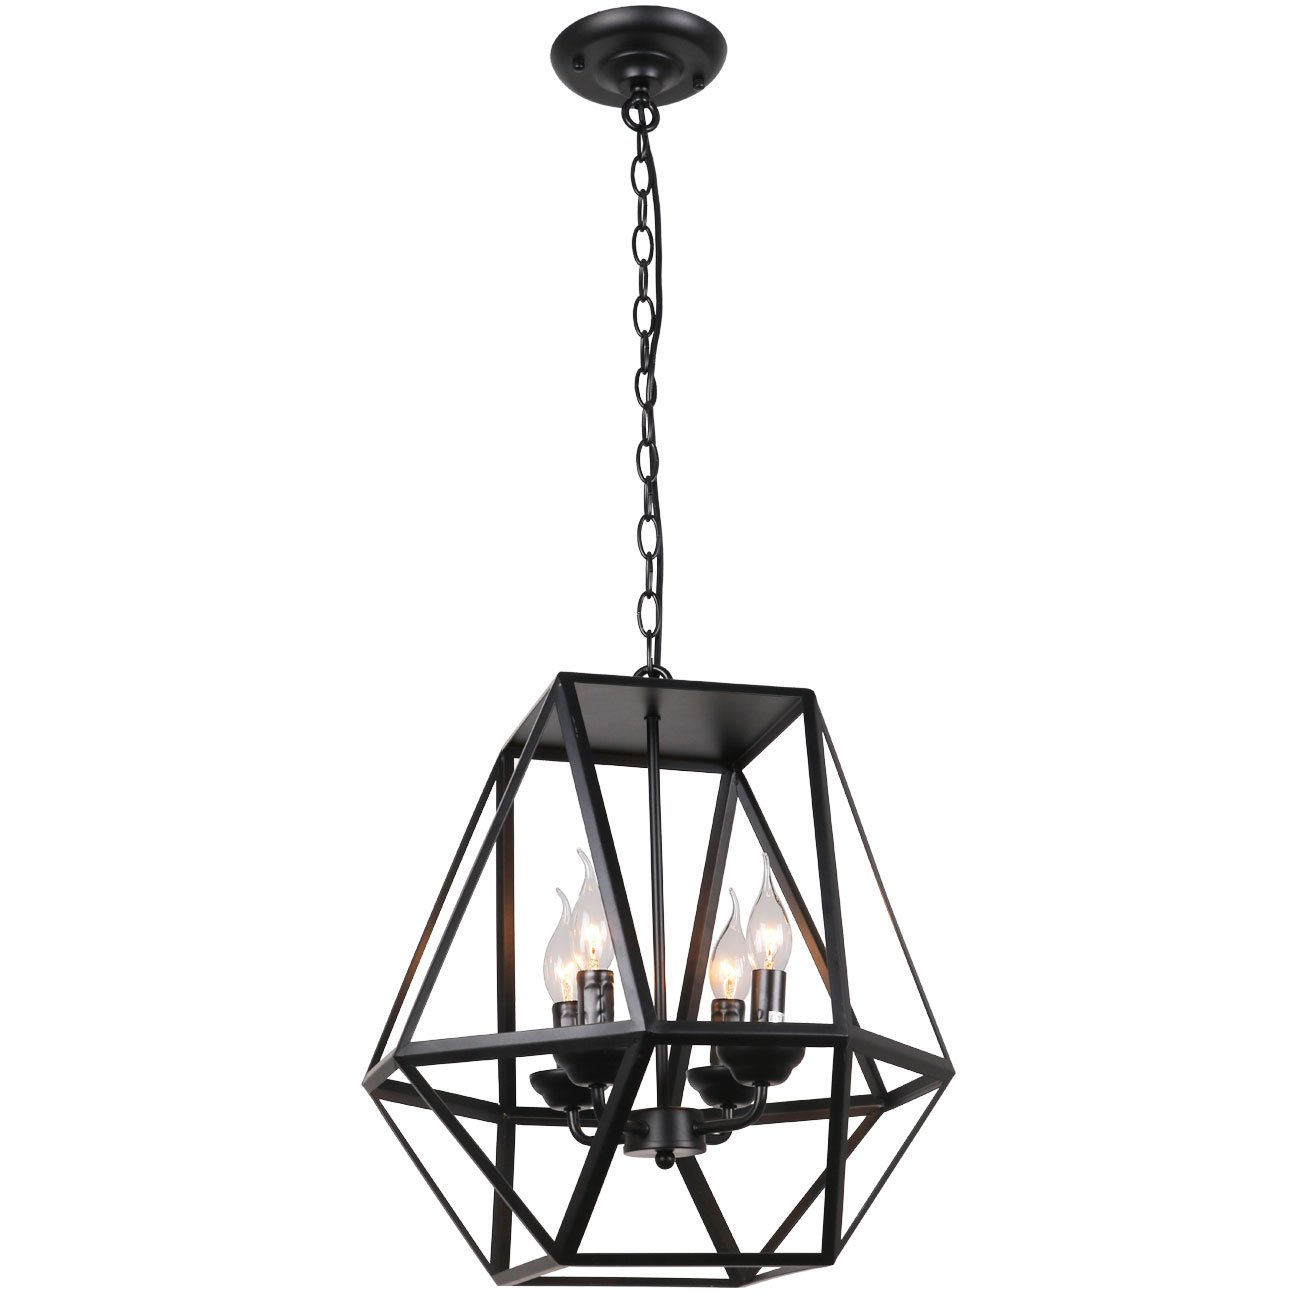 Unitary Brand Antique Black Metal Hanging Lantern Candle Chandelier with 4 E12 Bulb Sockets 160W Painted Finish